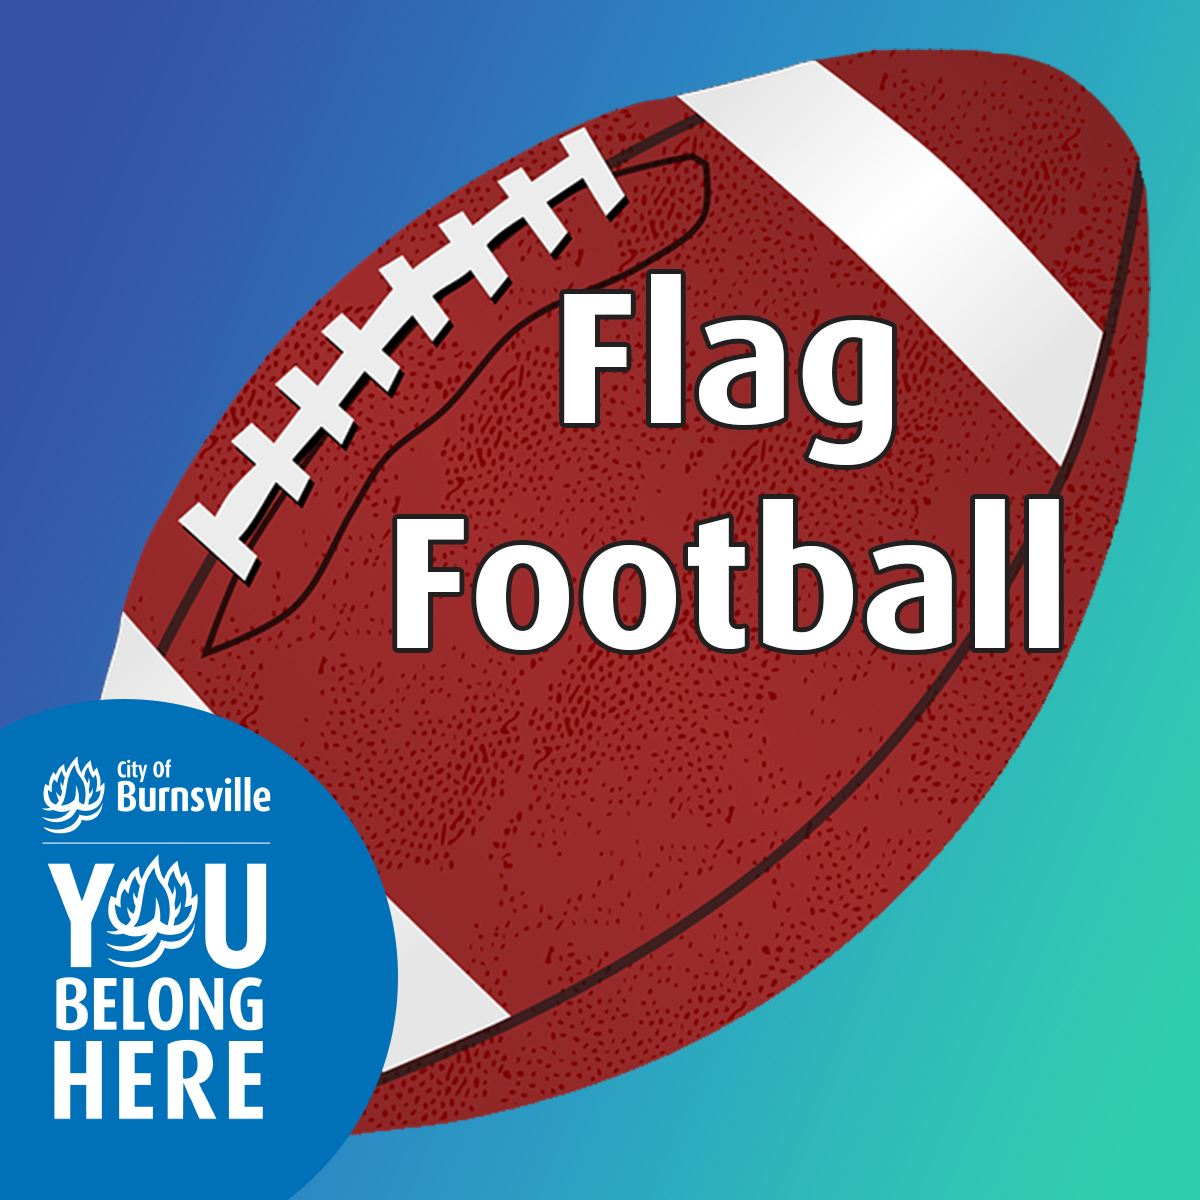 Football drawing on gradient blue to green background. Text: Ages 4-12, Flag Football Camps